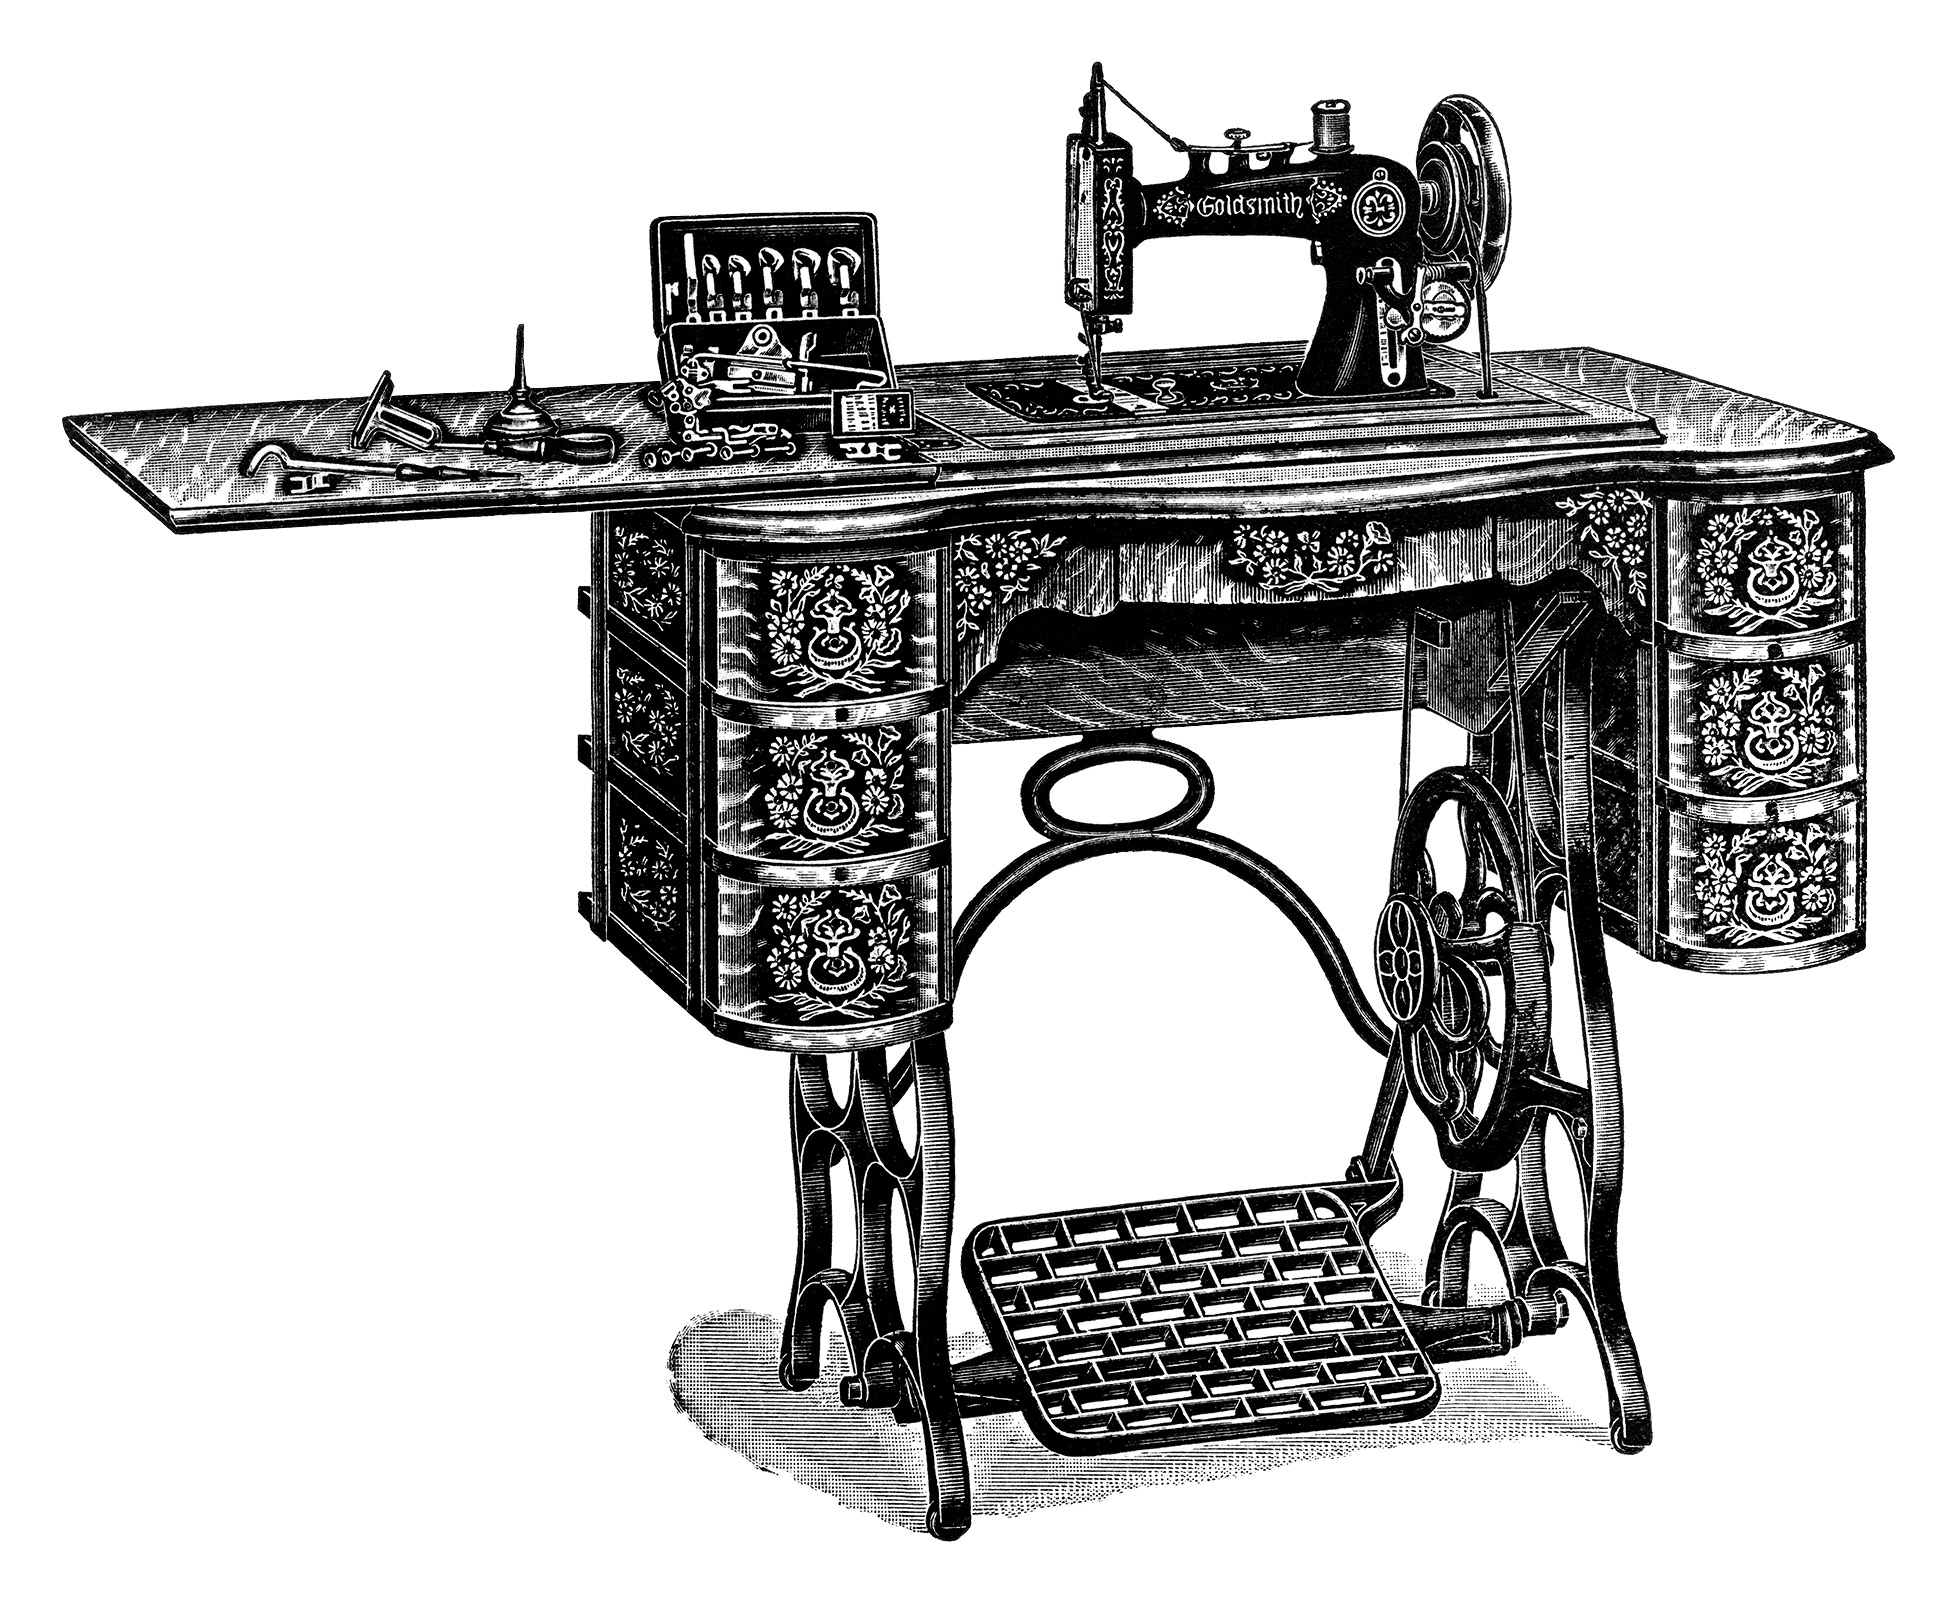 free vintage treadle sewing machine images old design shop blog. Black Bedroom Furniture Sets. Home Design Ideas